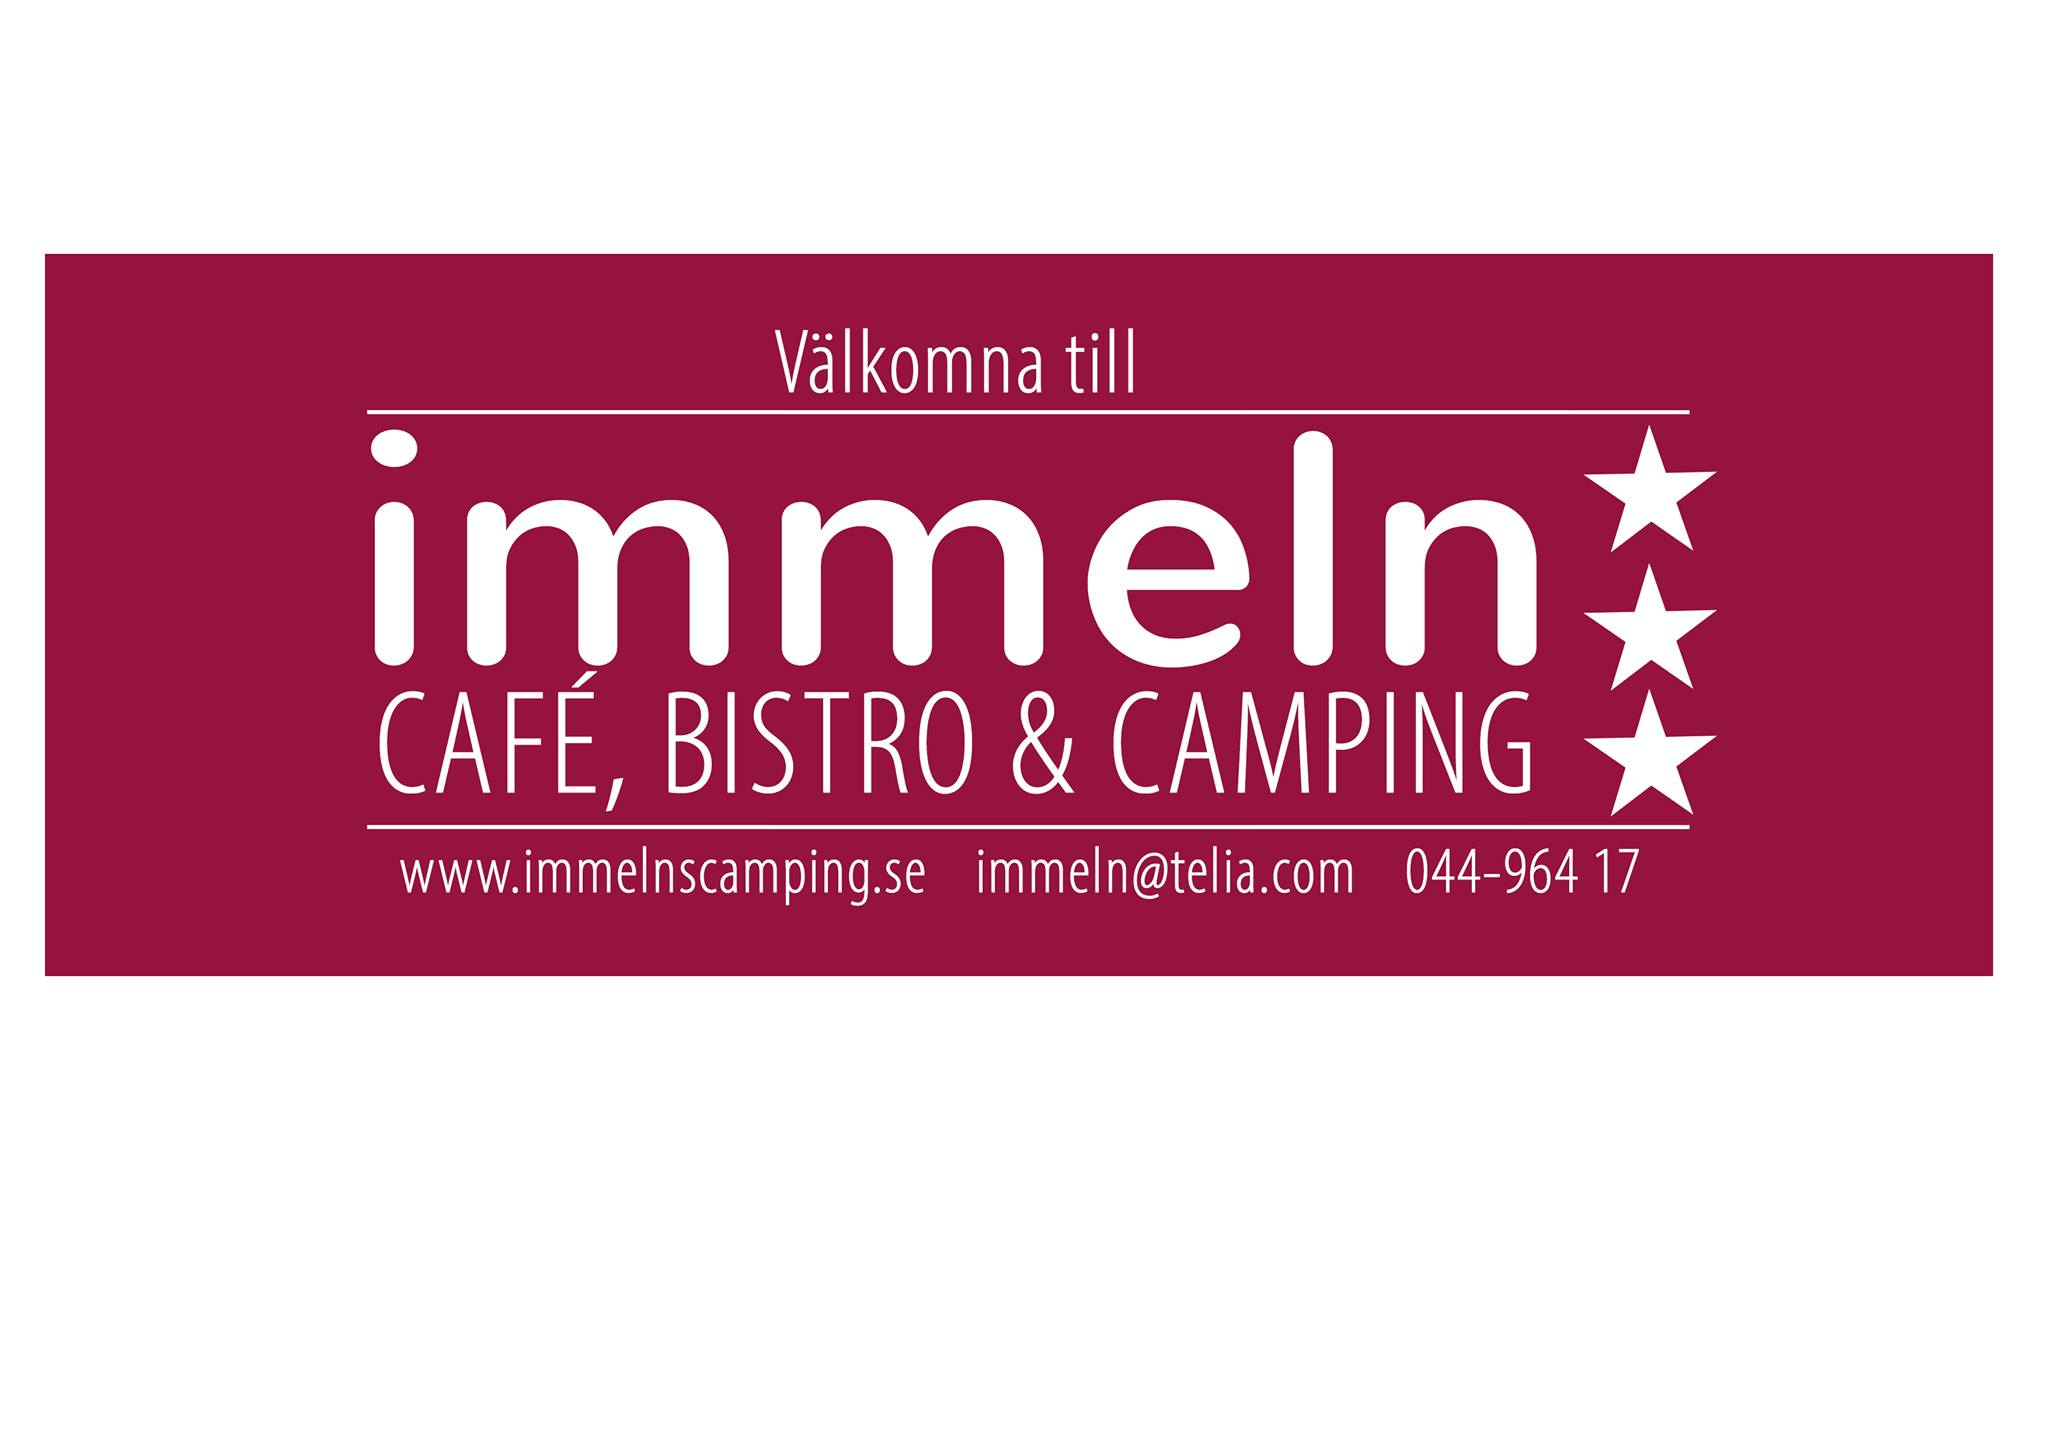 Immelns camping